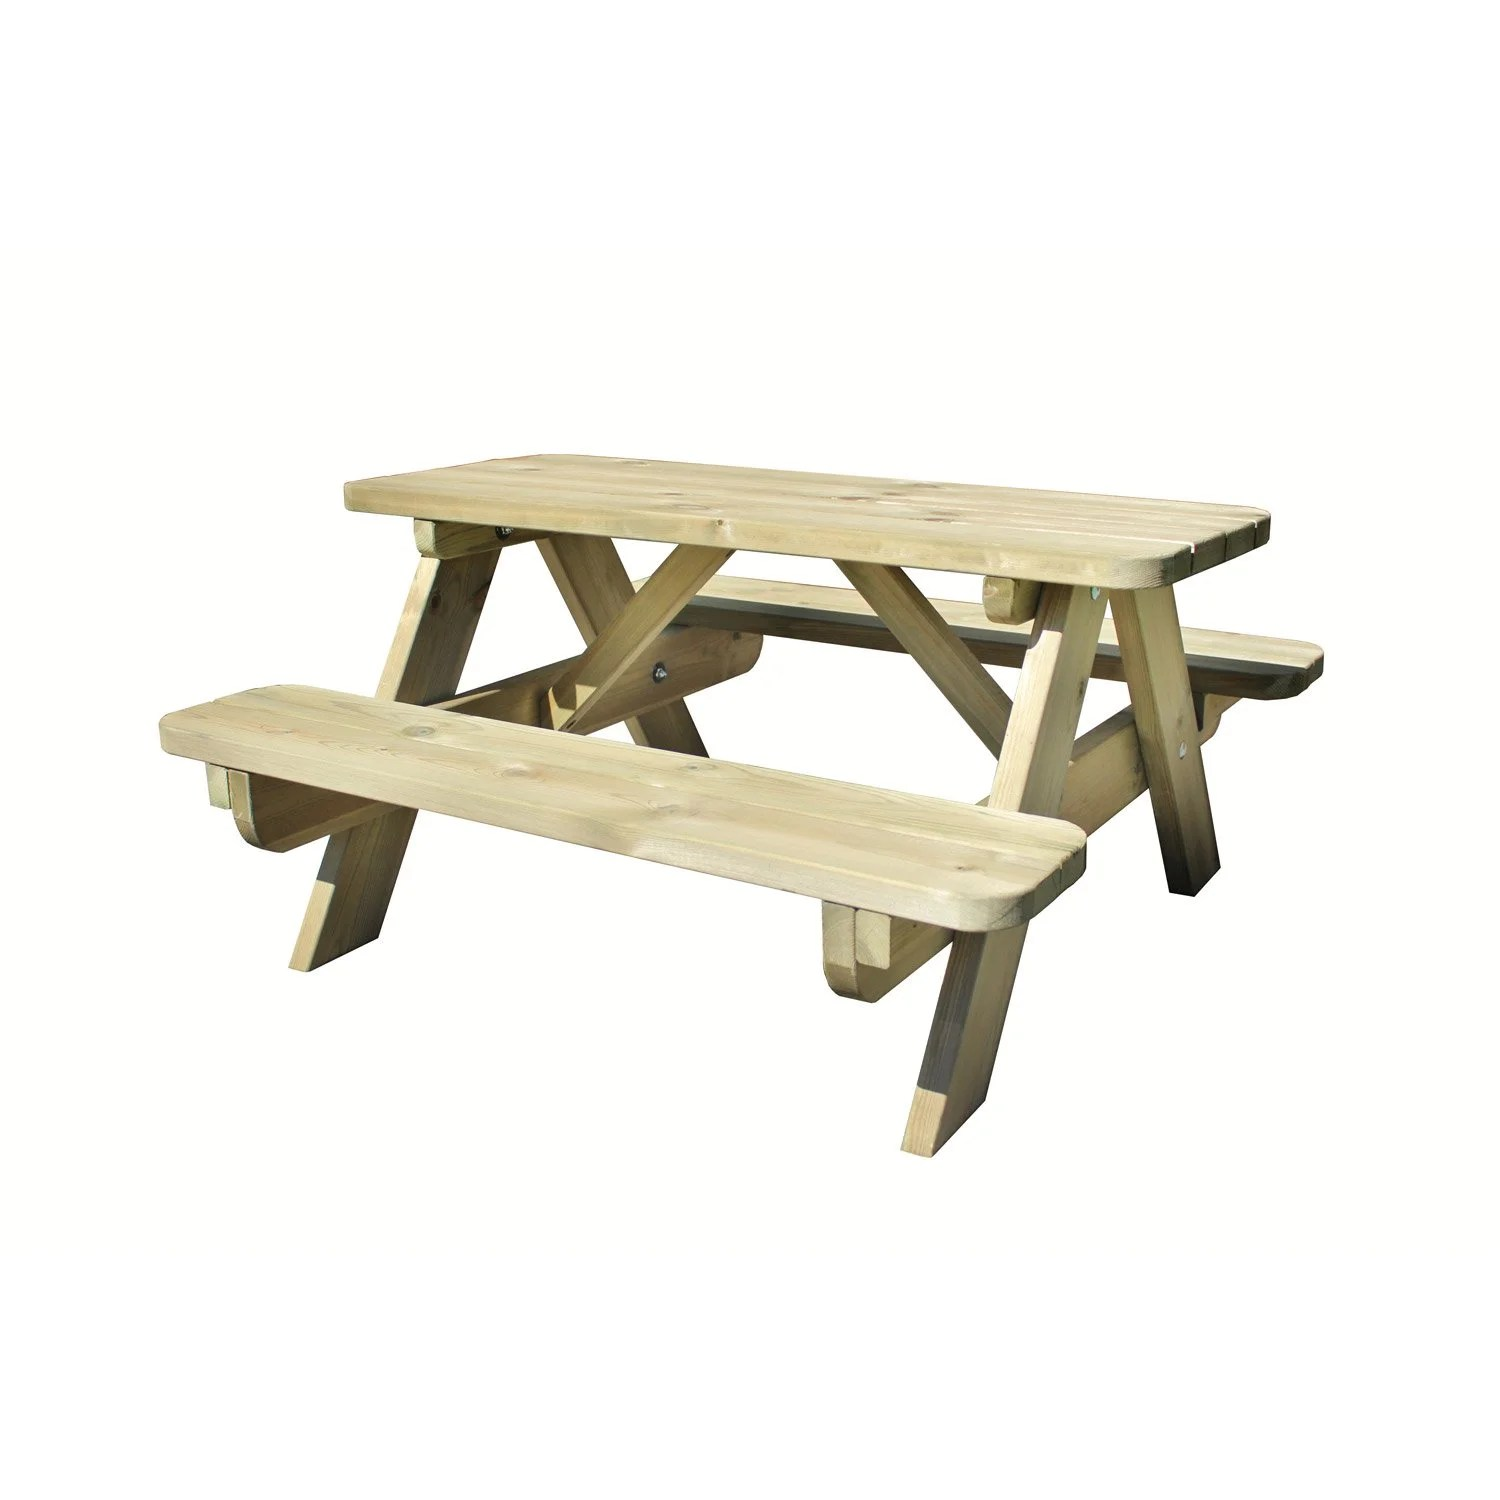 Leroy Merlin Mobilier De Jardin Leroy Merlin Table Jardin Table De Jardin Avec Extension